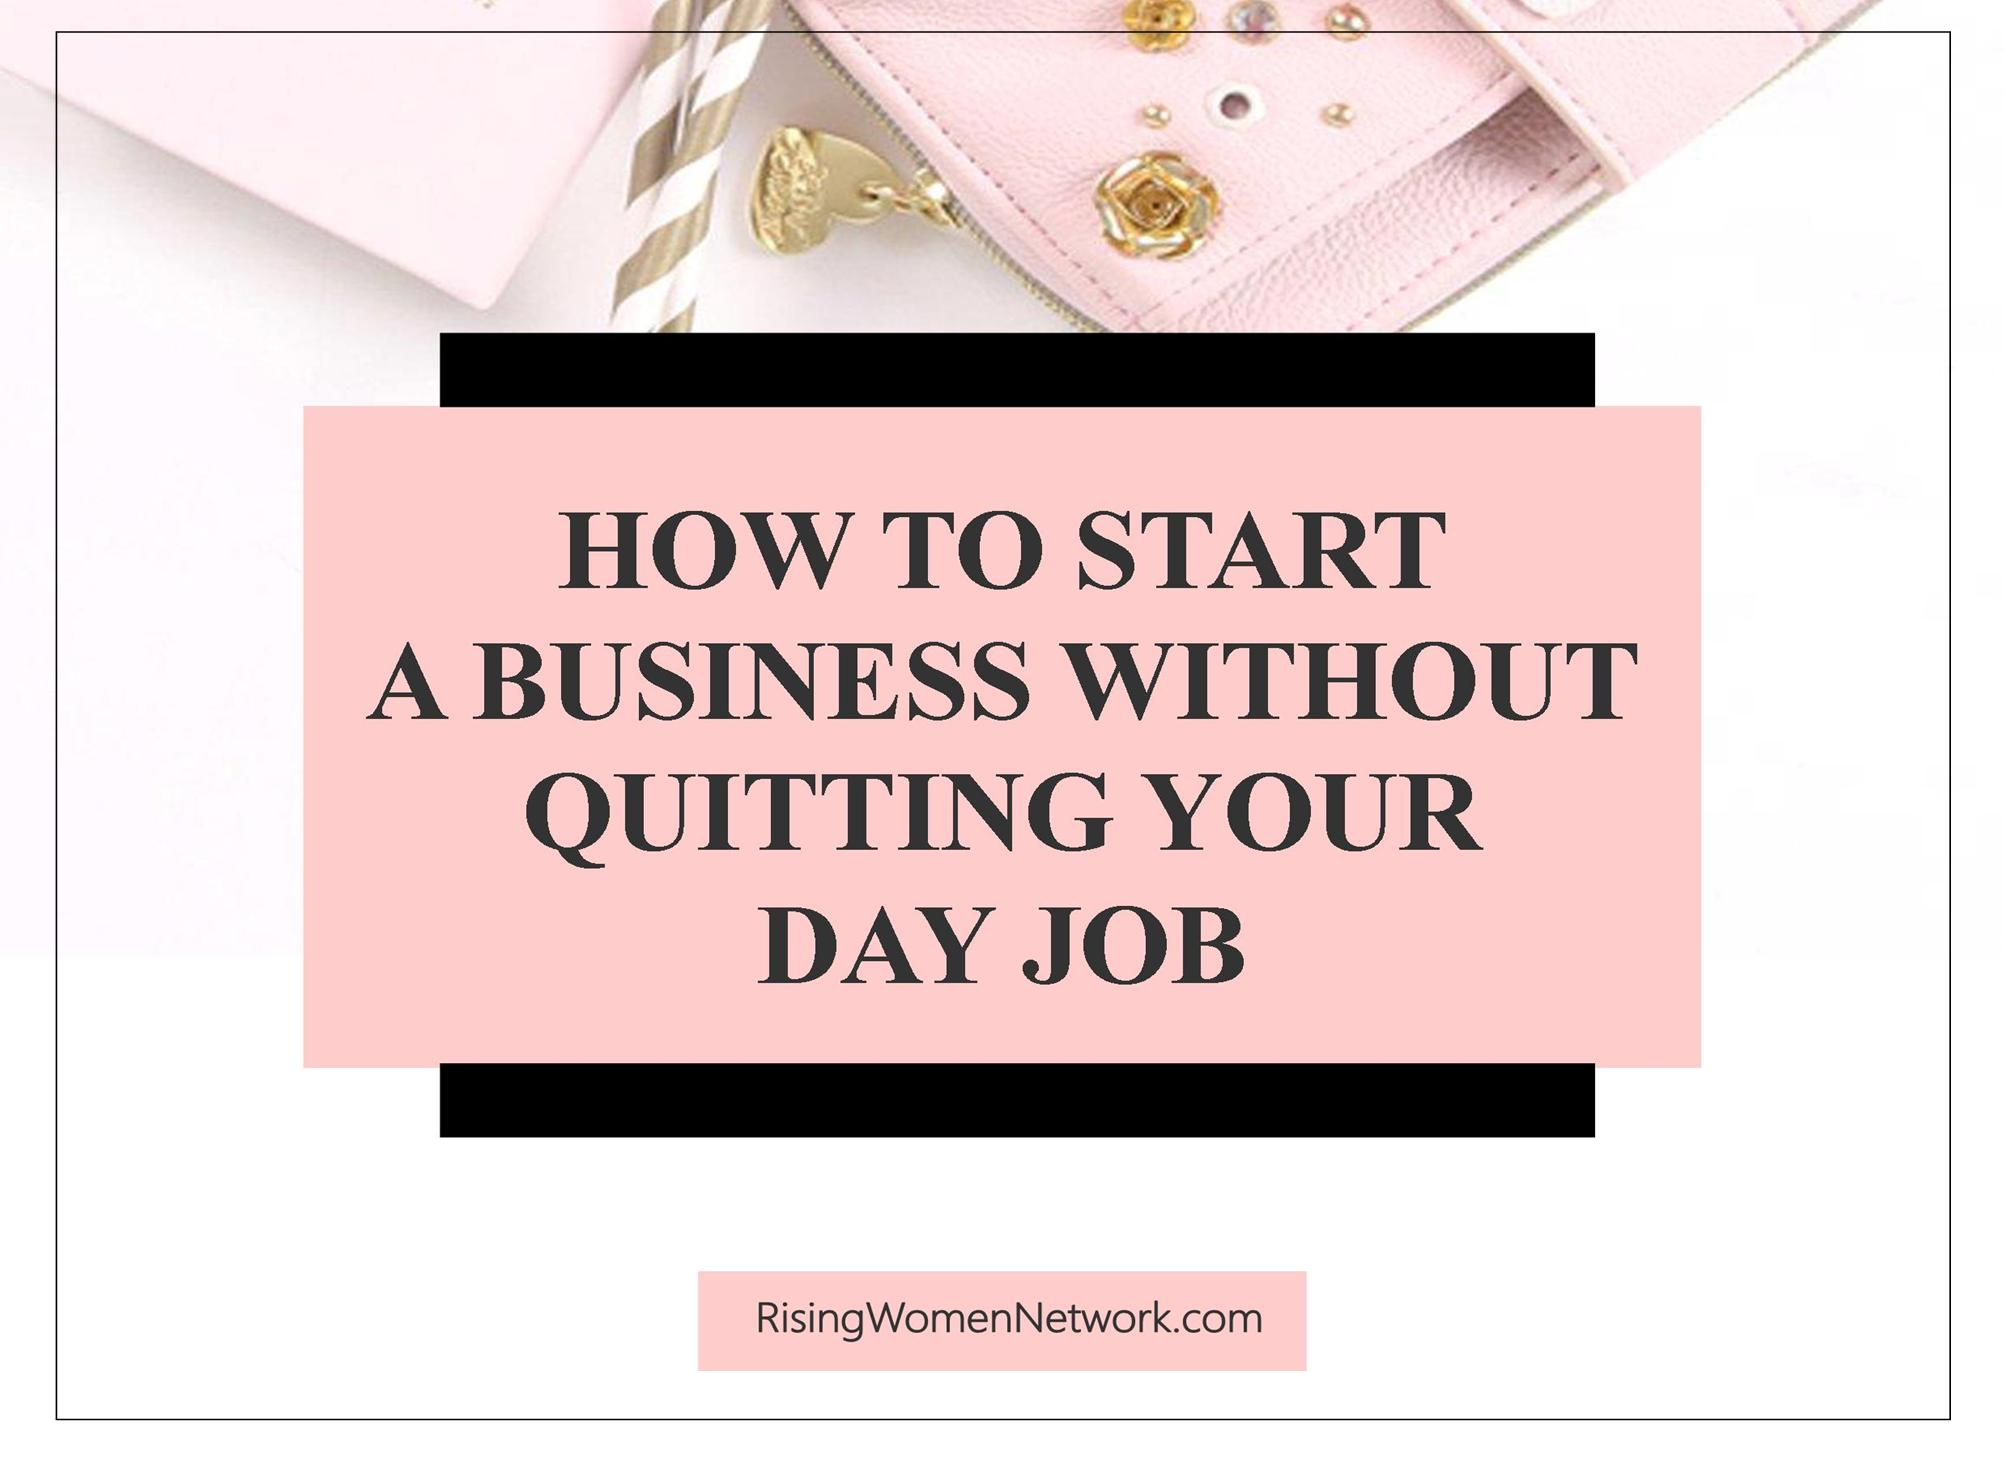 How To Start A Business Without Quitting Your Day Job